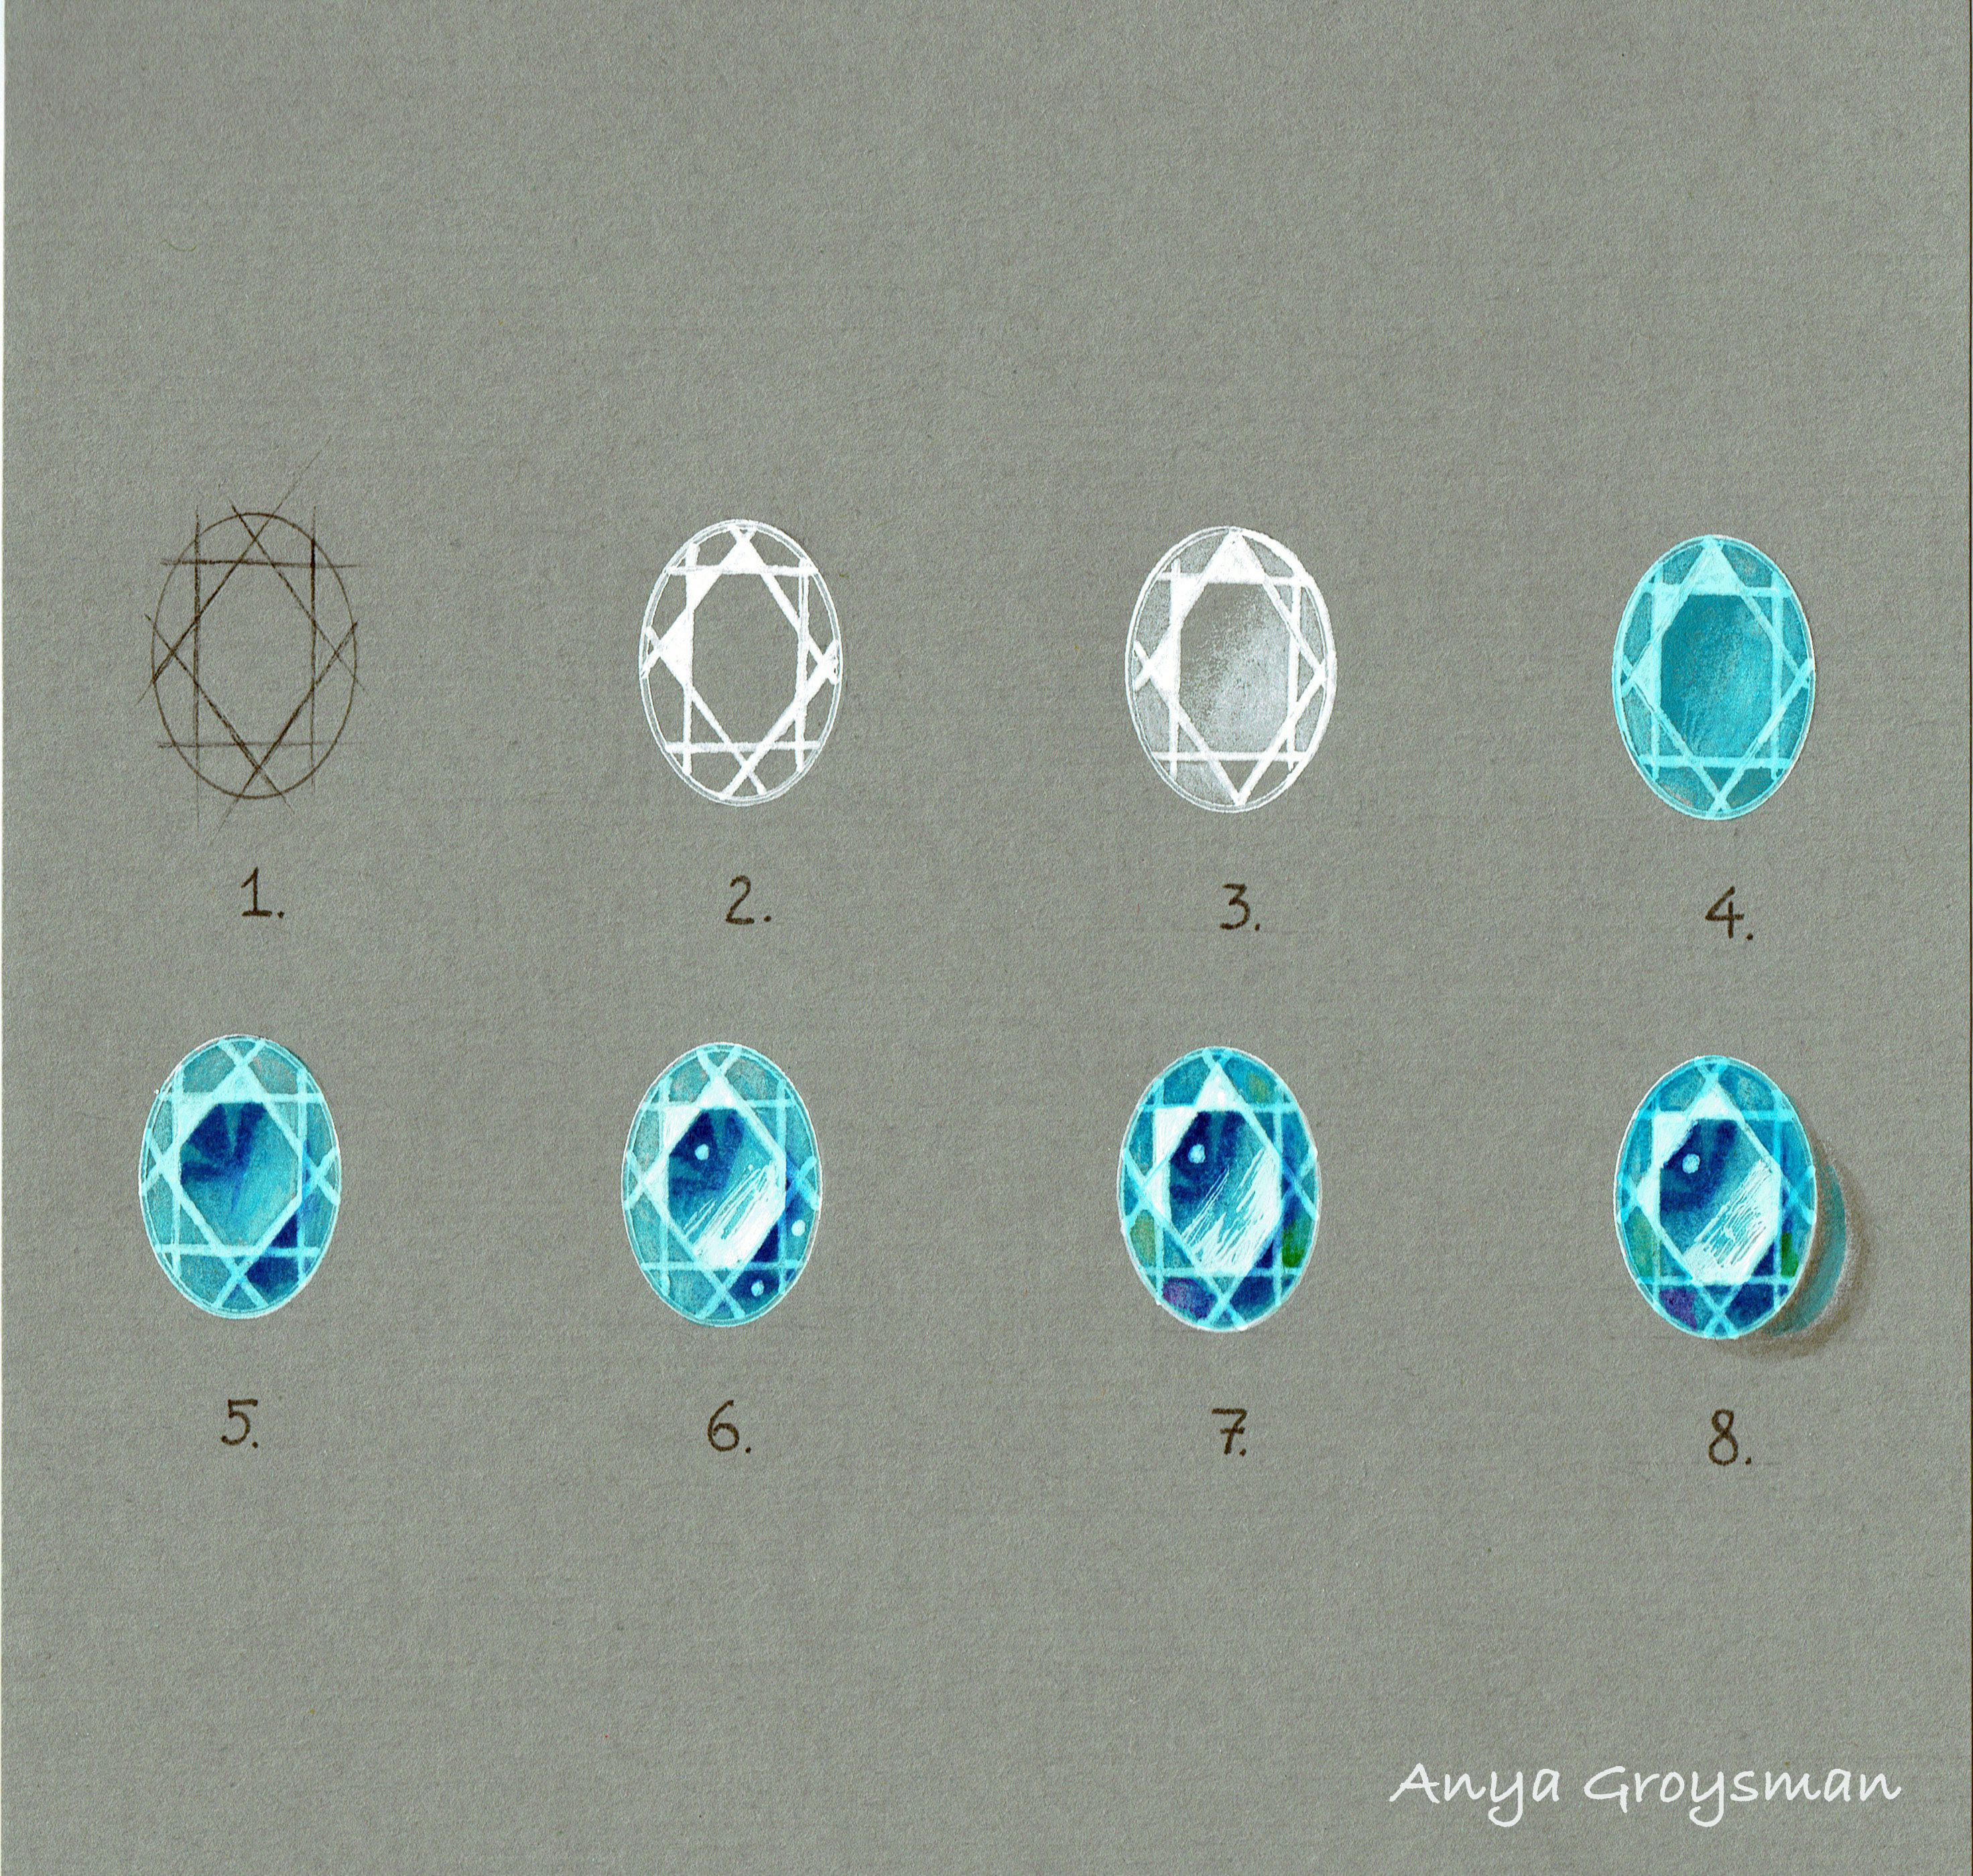 2944x2799 Drawing Gemstones With Anya Groysman Sketches